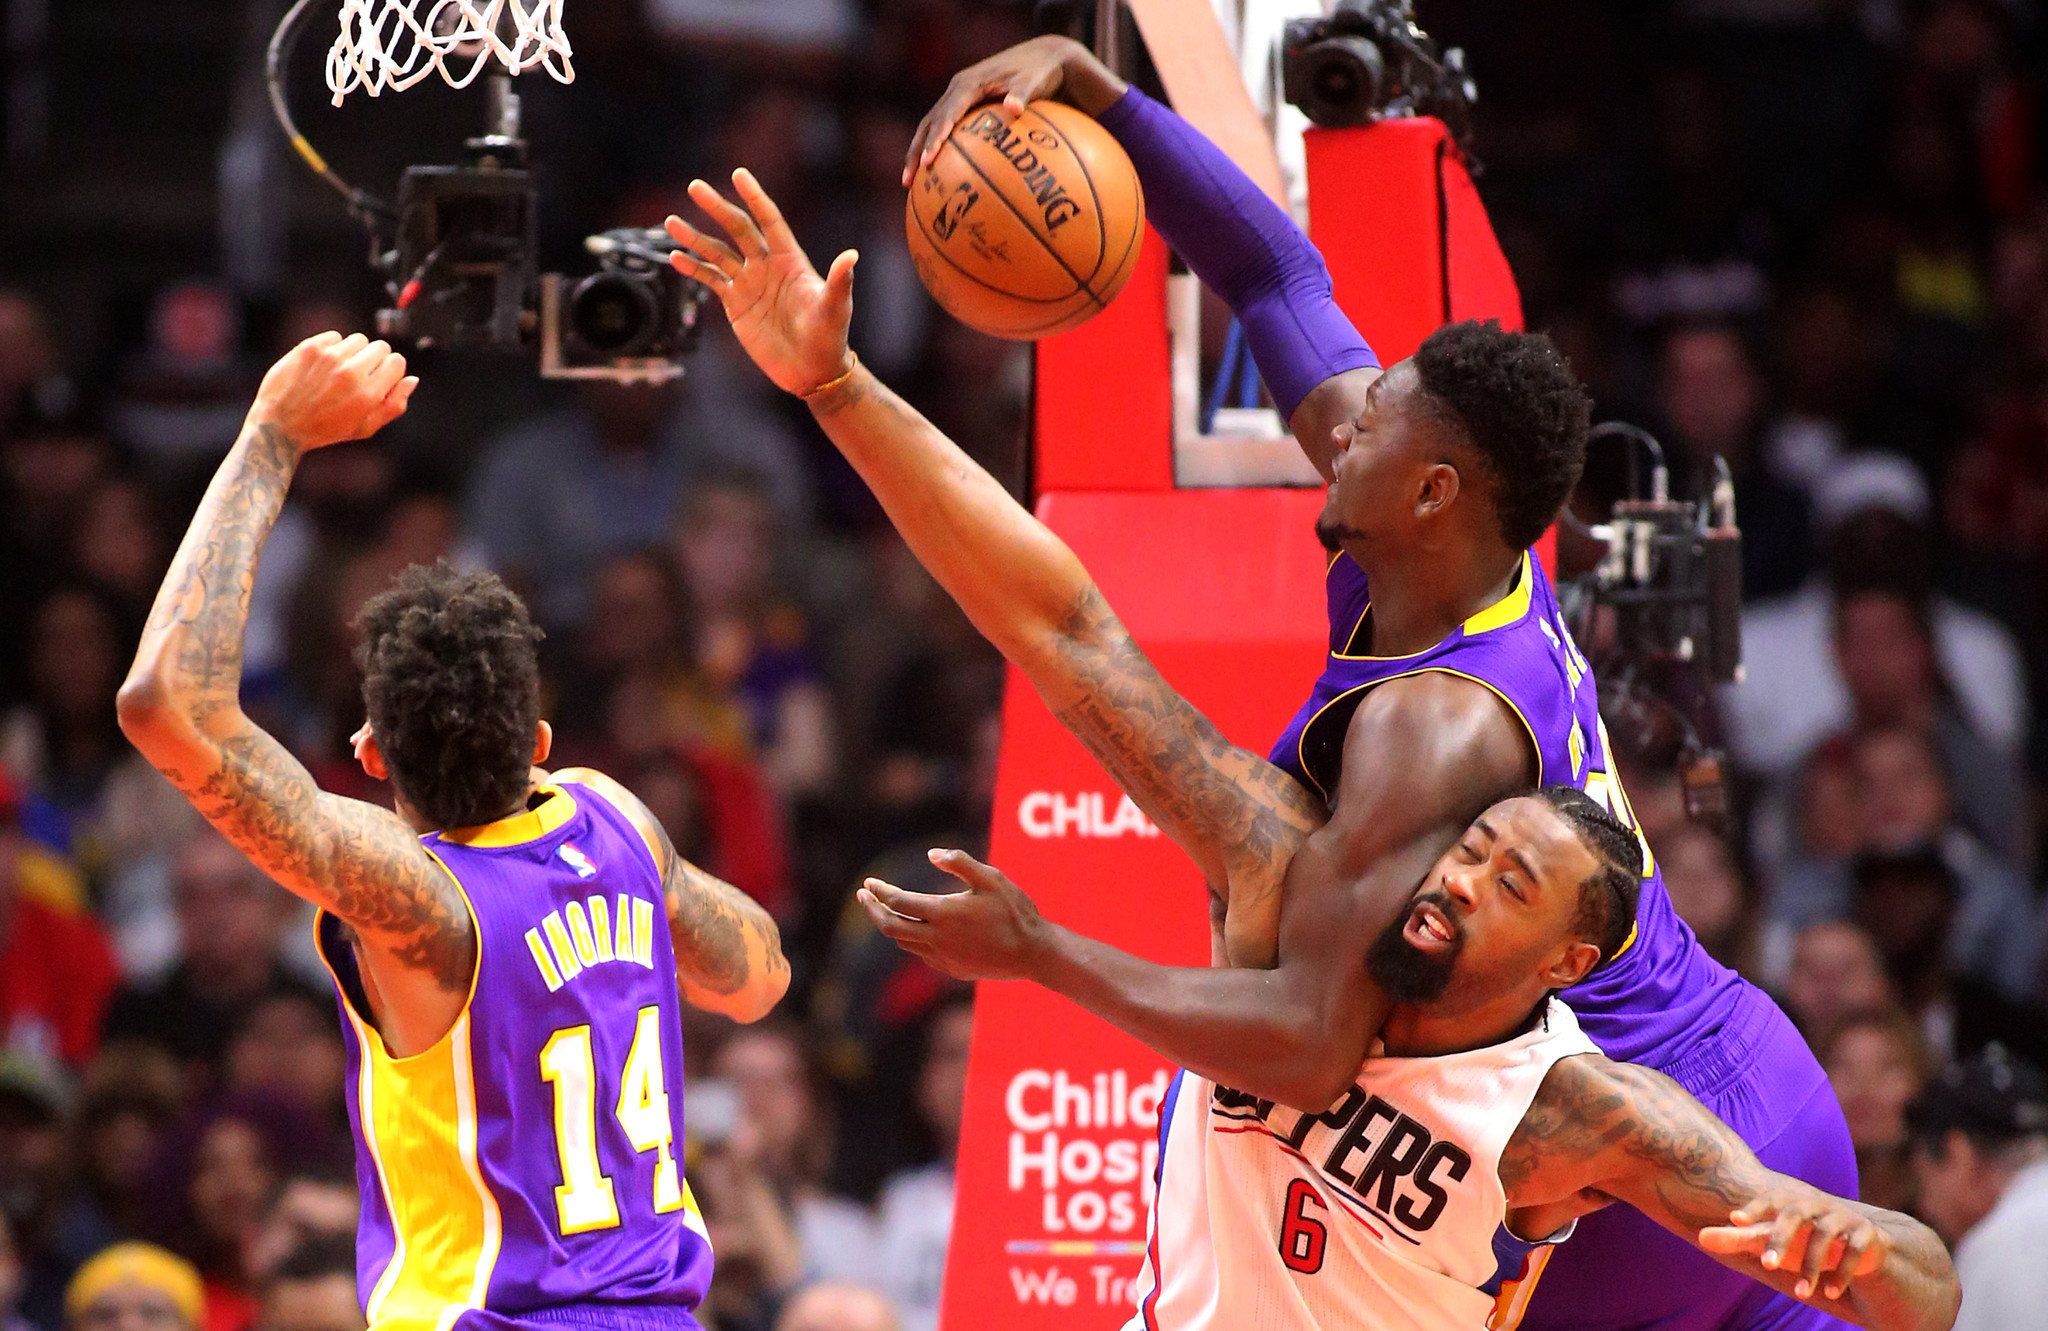 Lakers vs. Clippers - LA TimesLakers Vs Clippers